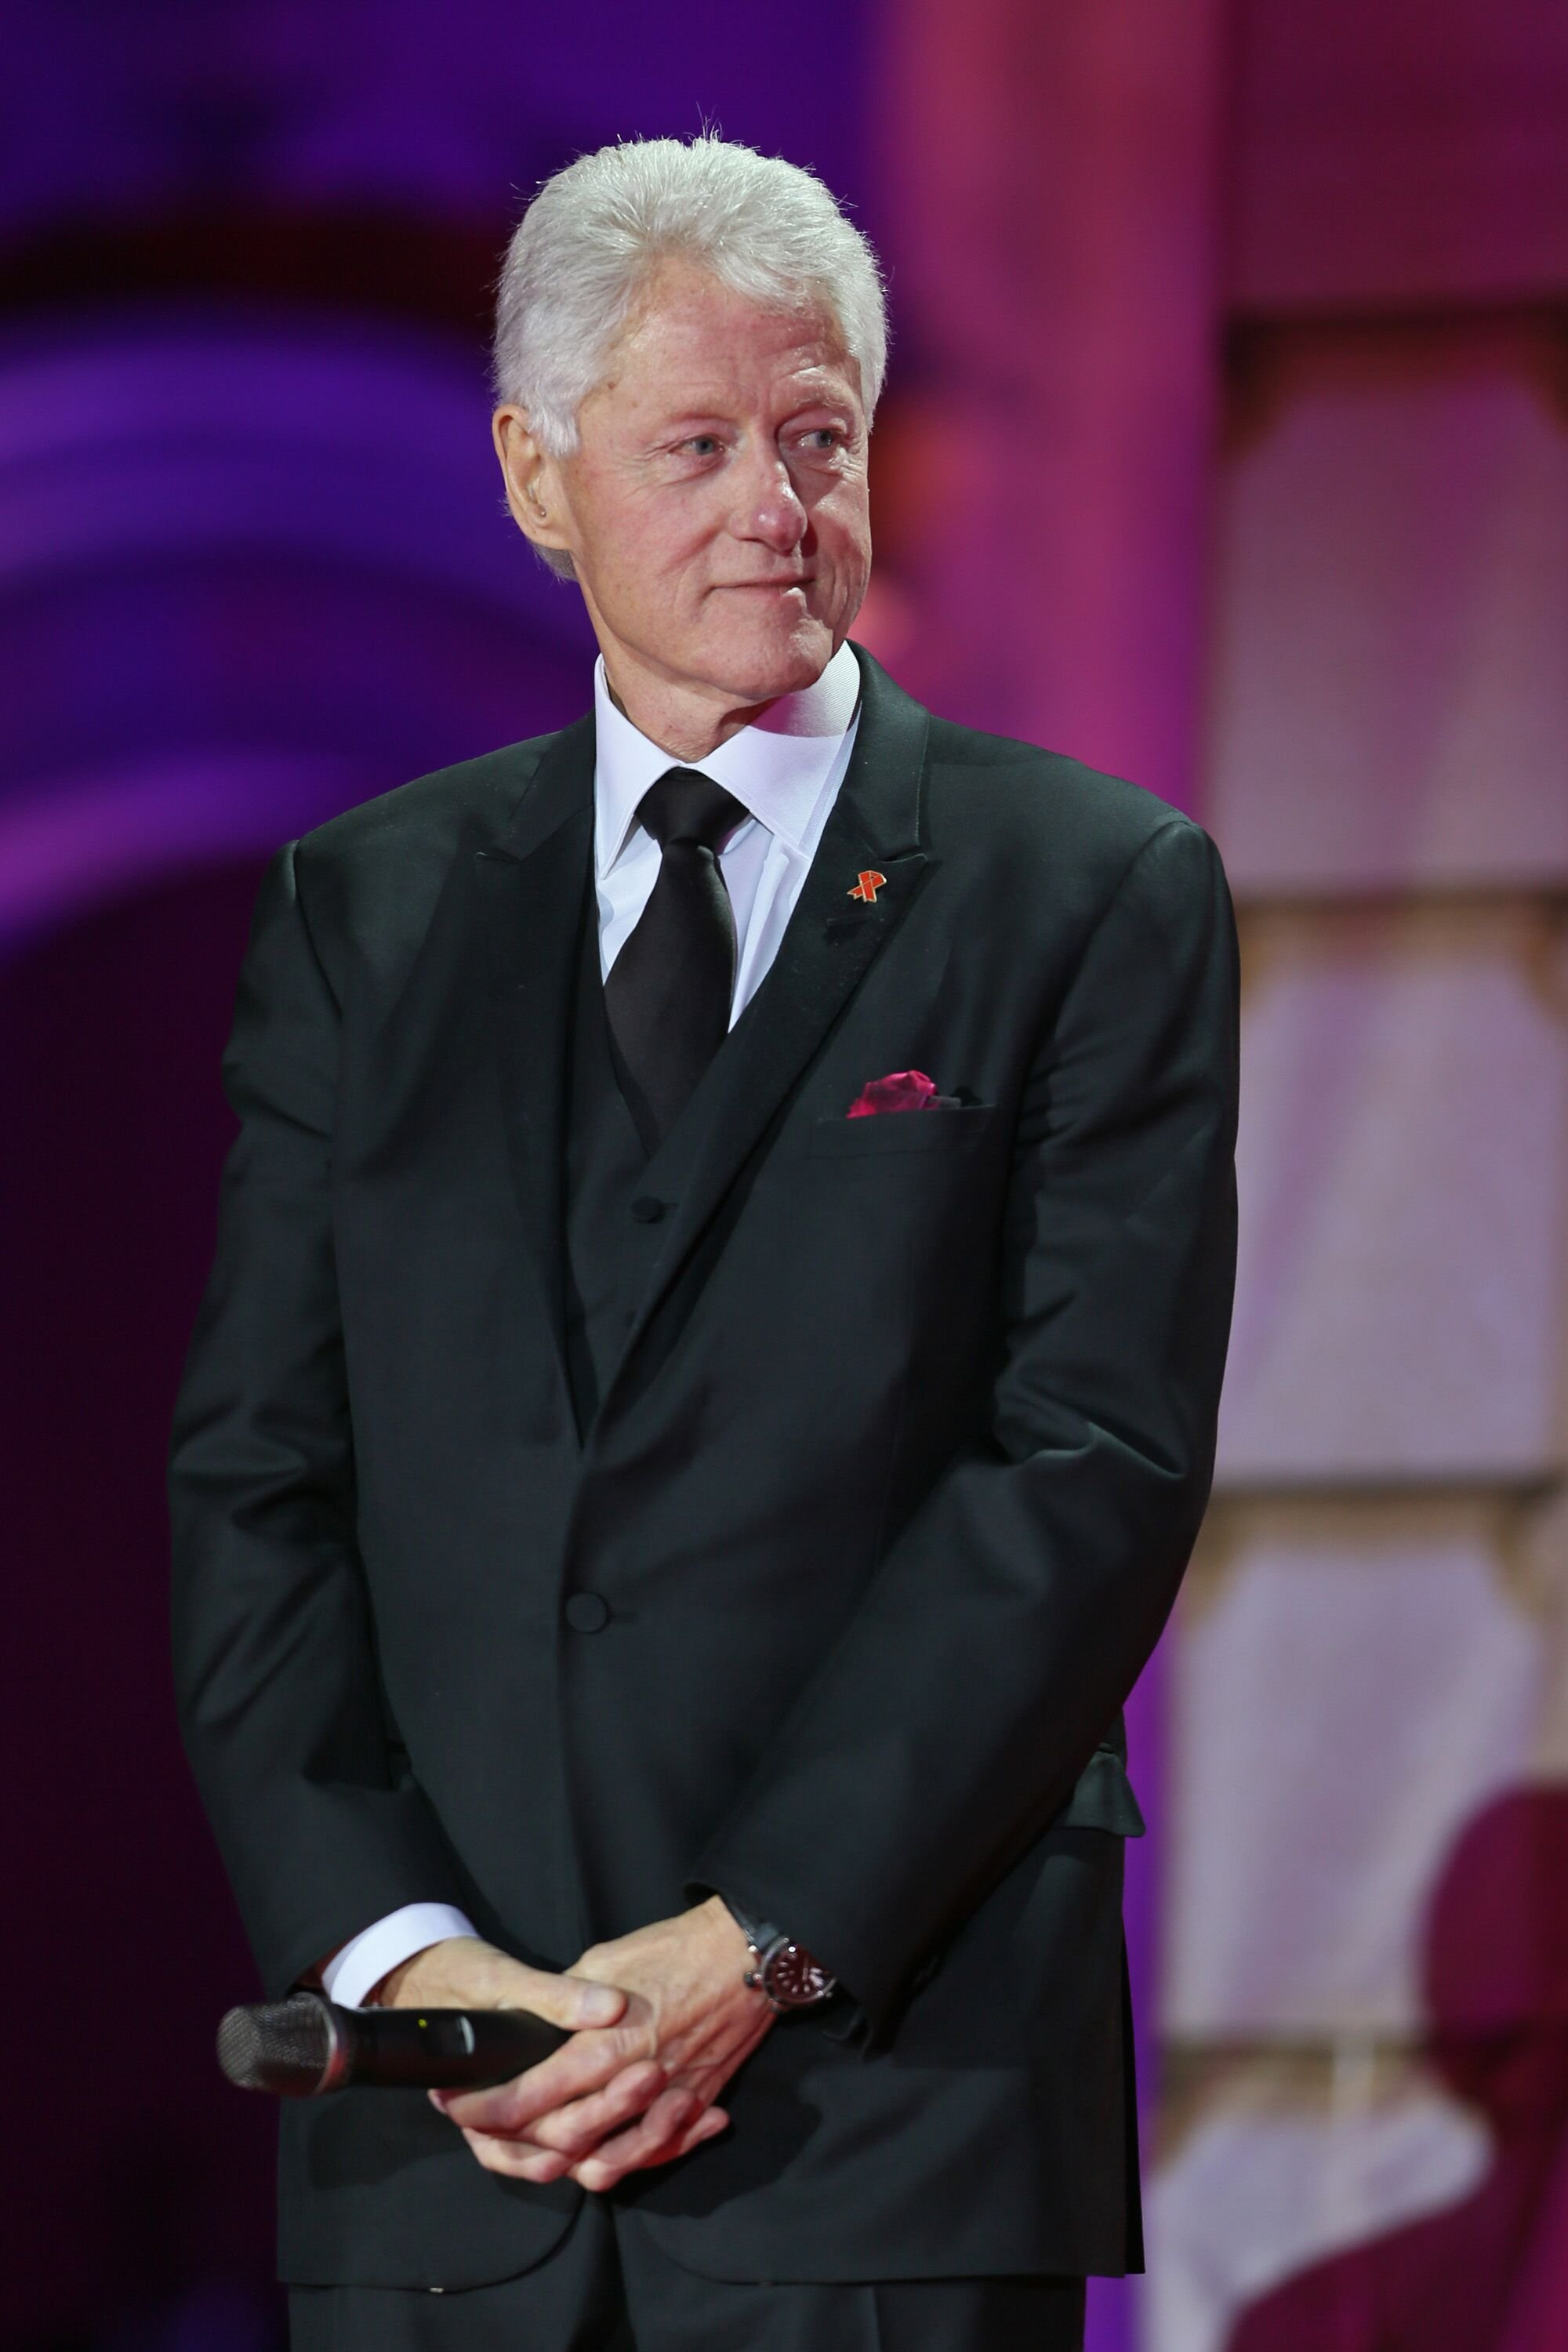 Bill Clinton attends the 'Life Ball 2013 - Show' at City Hall.   Source: Getty Images